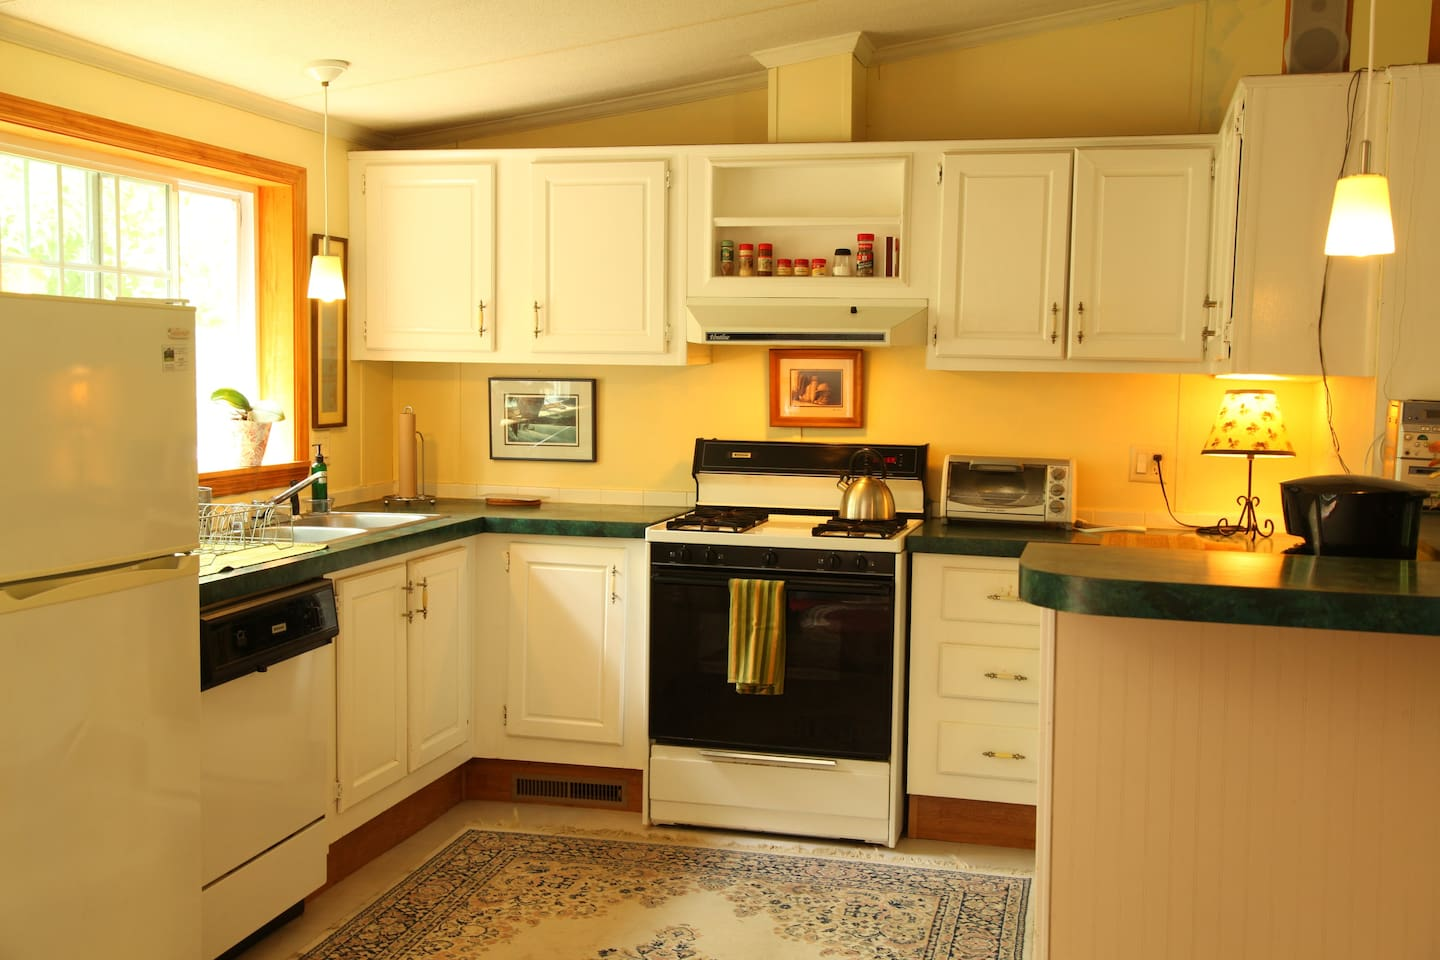 Kitchen of The Hiker's Roost